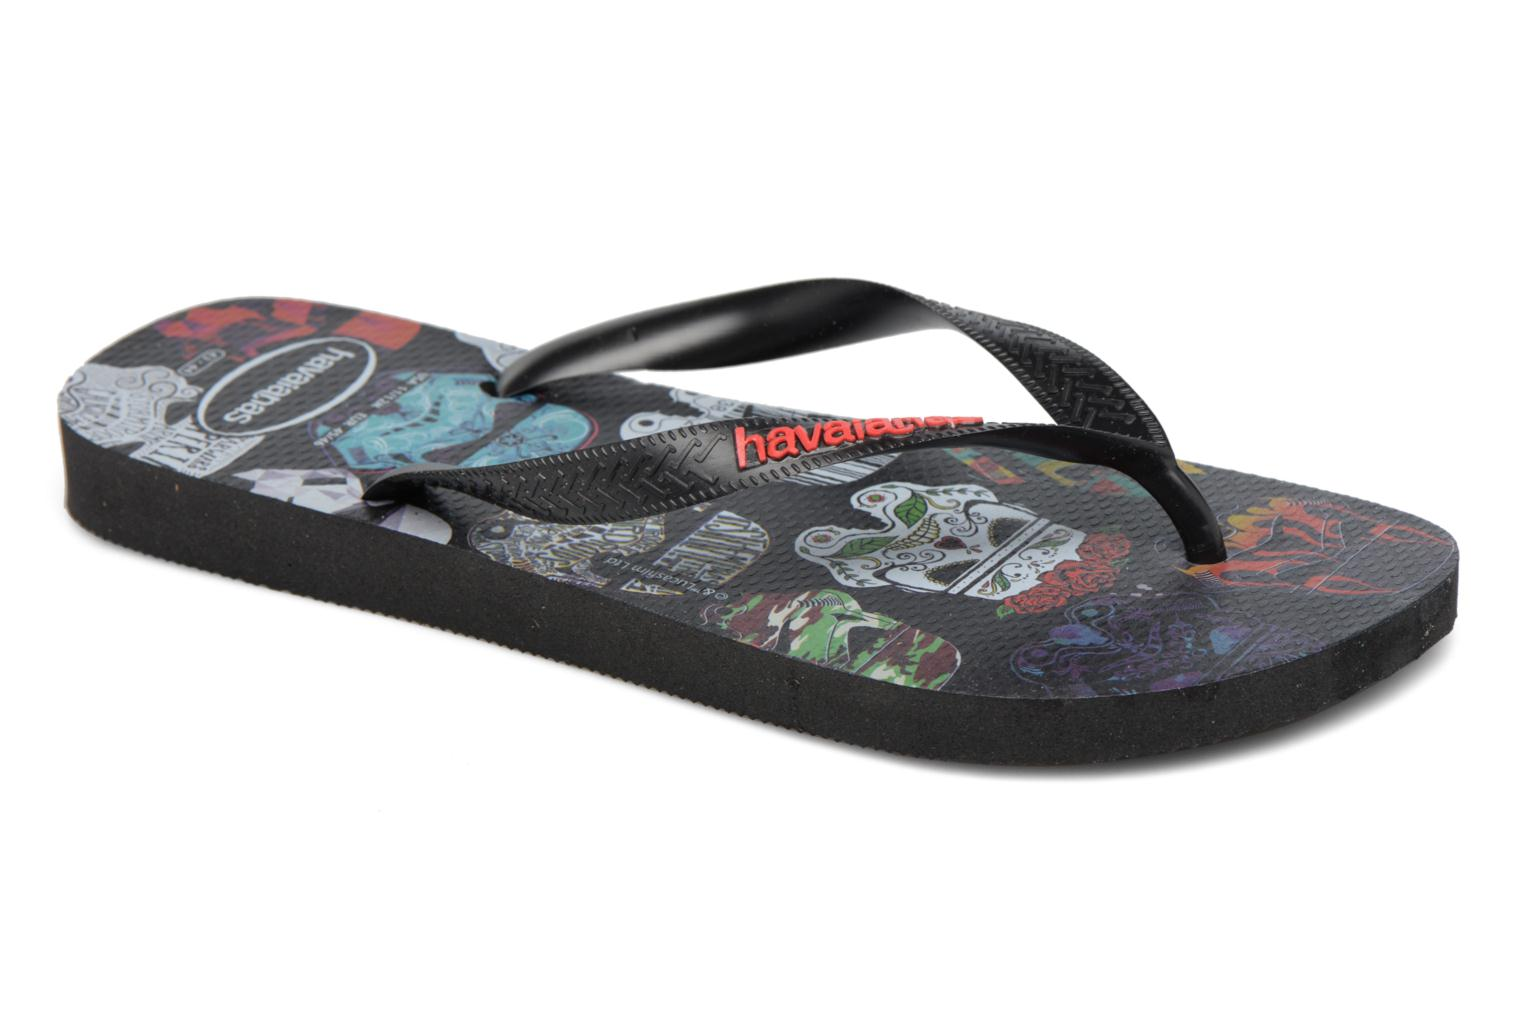 HAV. STAR WARS Black/Black/Red